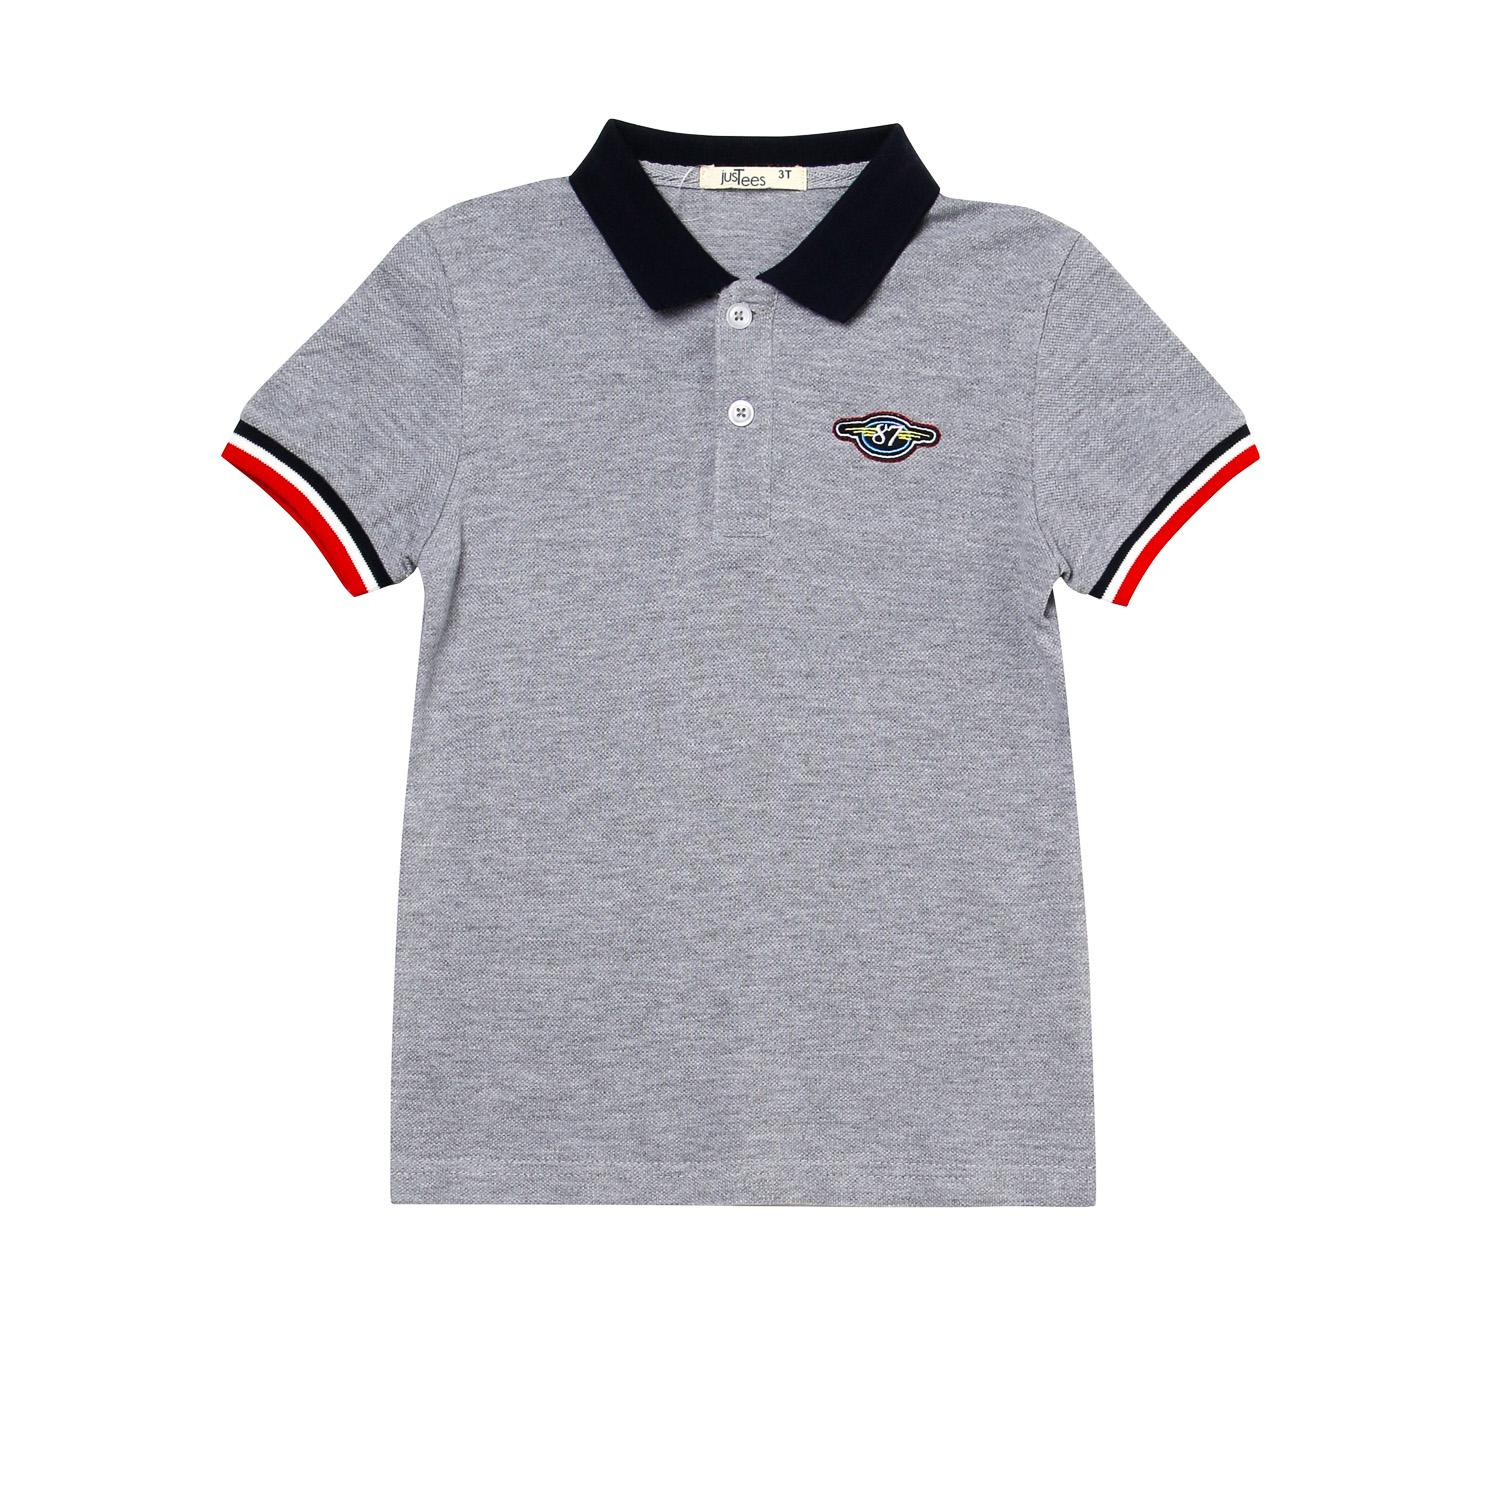 f73a332026aa Baby Polos for Boys for sale - Boys Polos Online Deals & Prices in ...